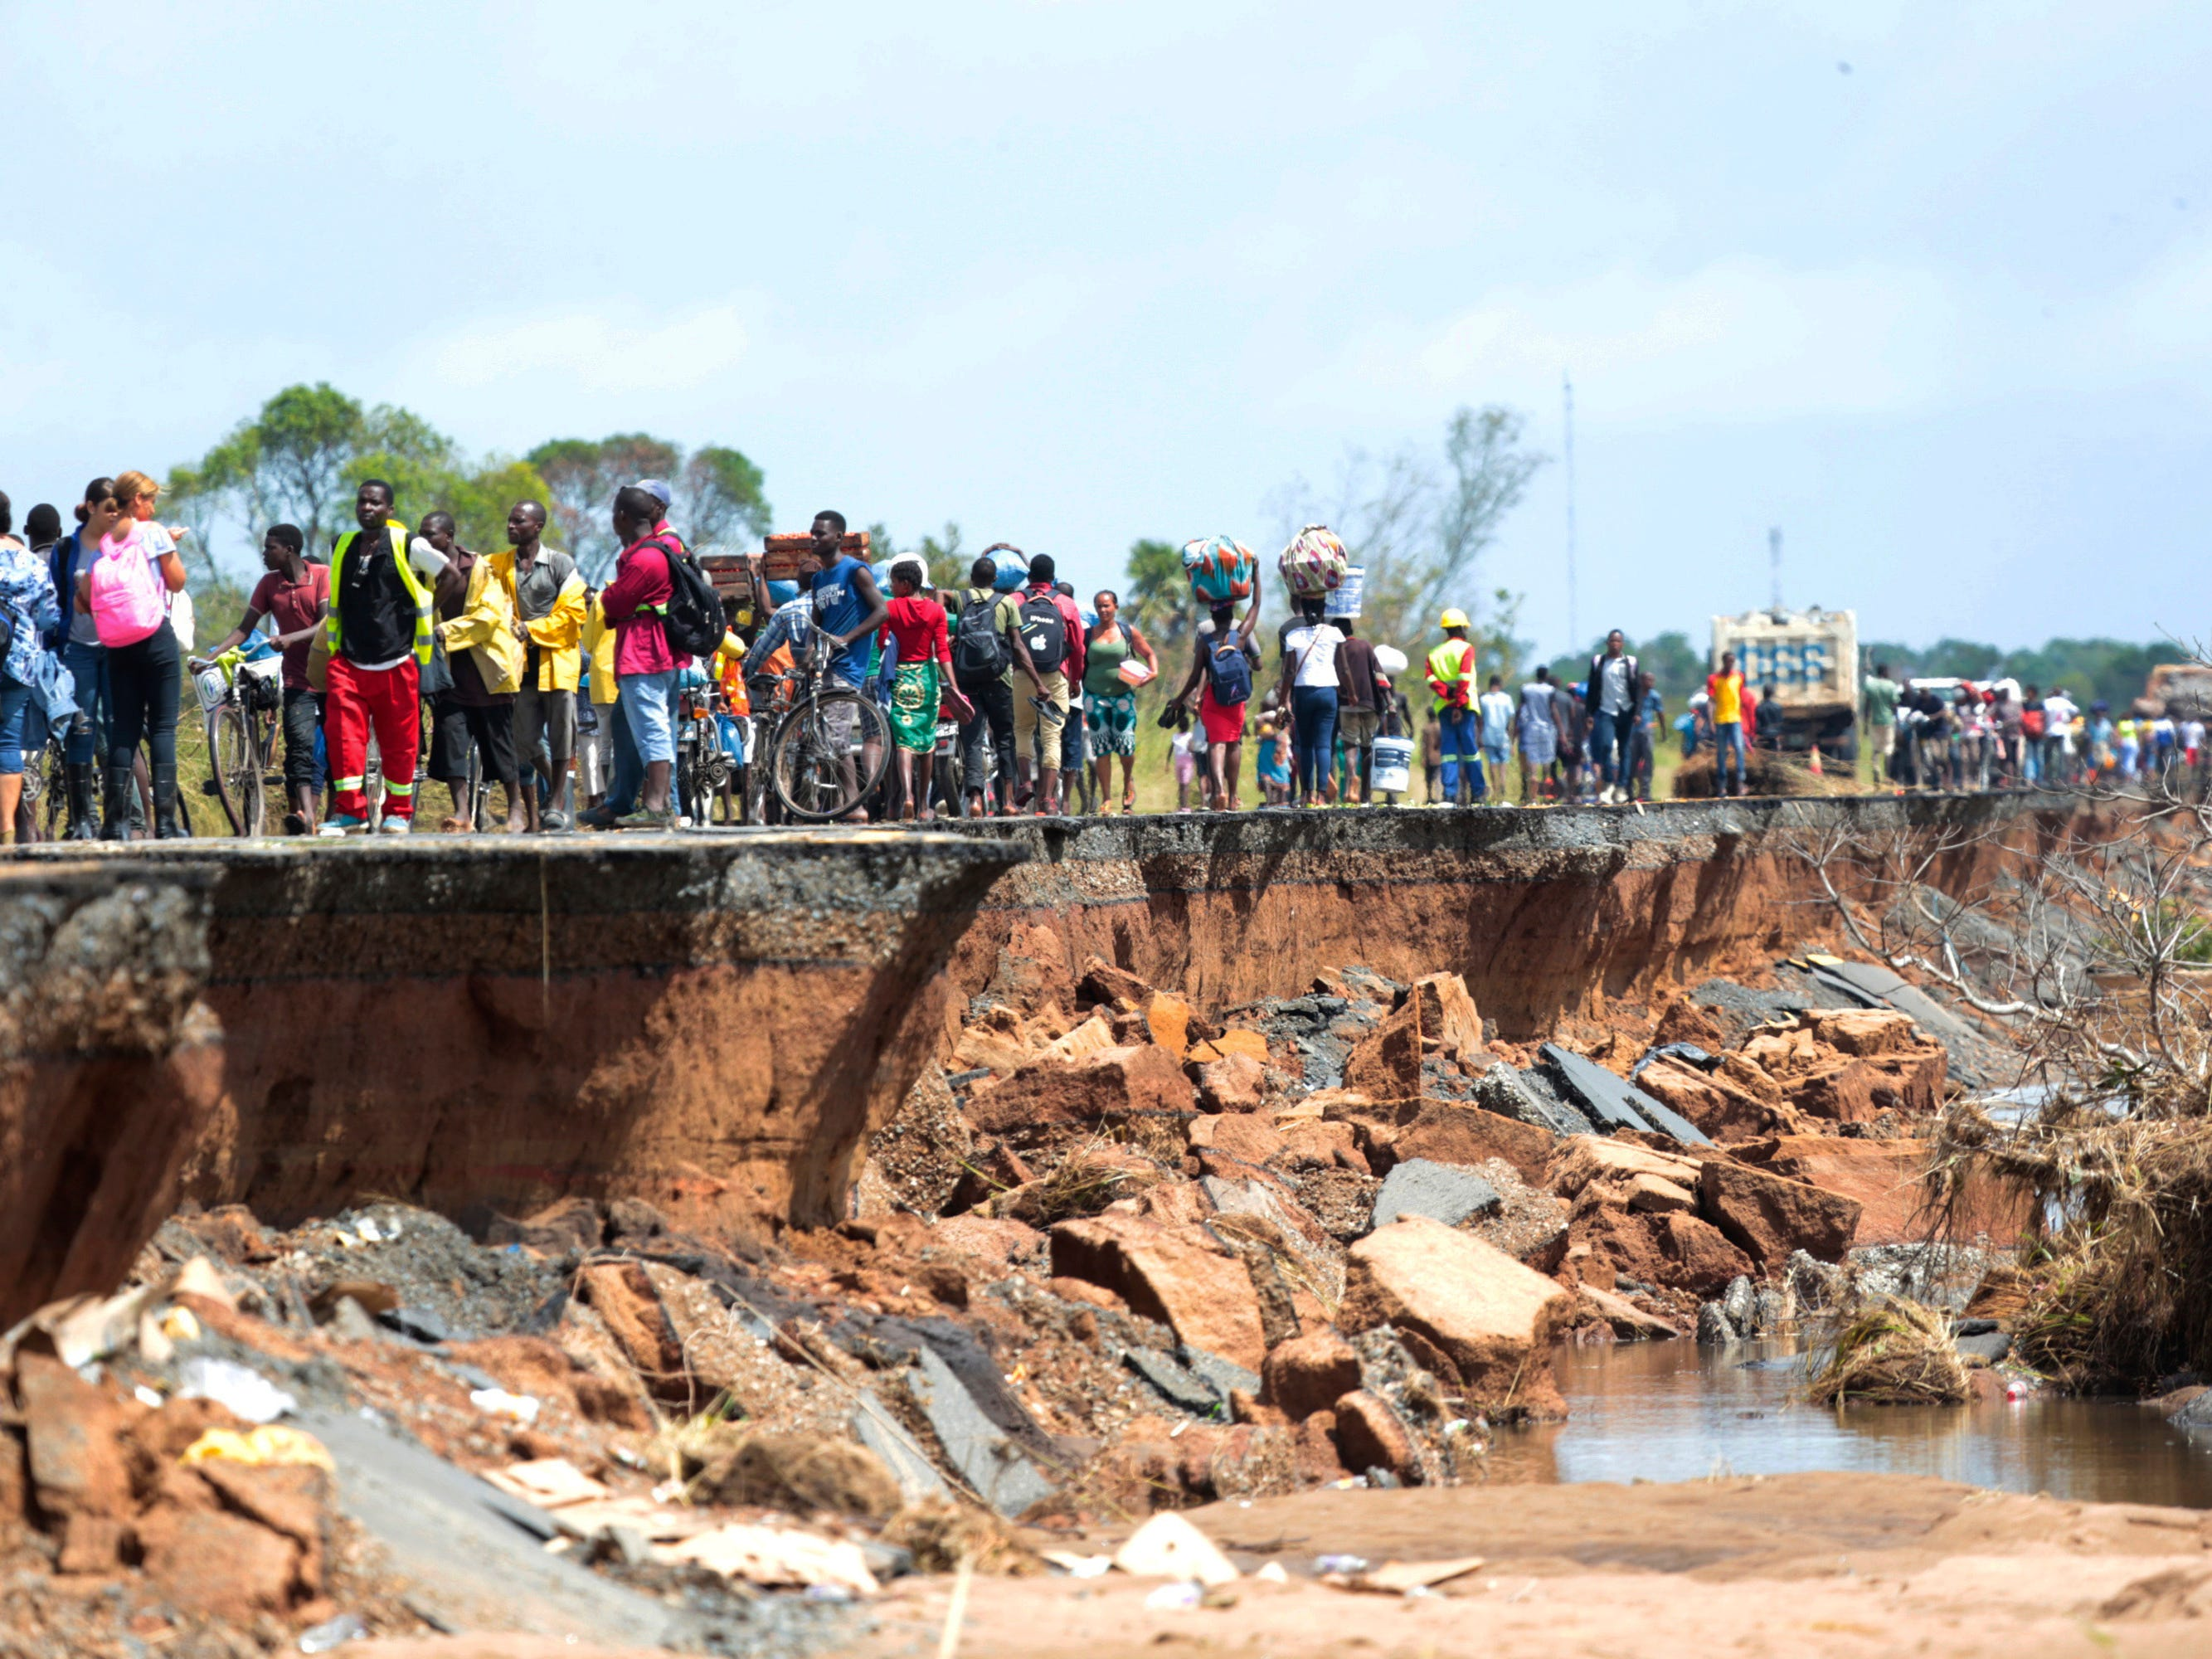 People pass through a section of the road damaged by Cyclone Idai in Nhamatanda about 50 kilometers from Beira, in Mozambique, Friday March, 22, 2019.